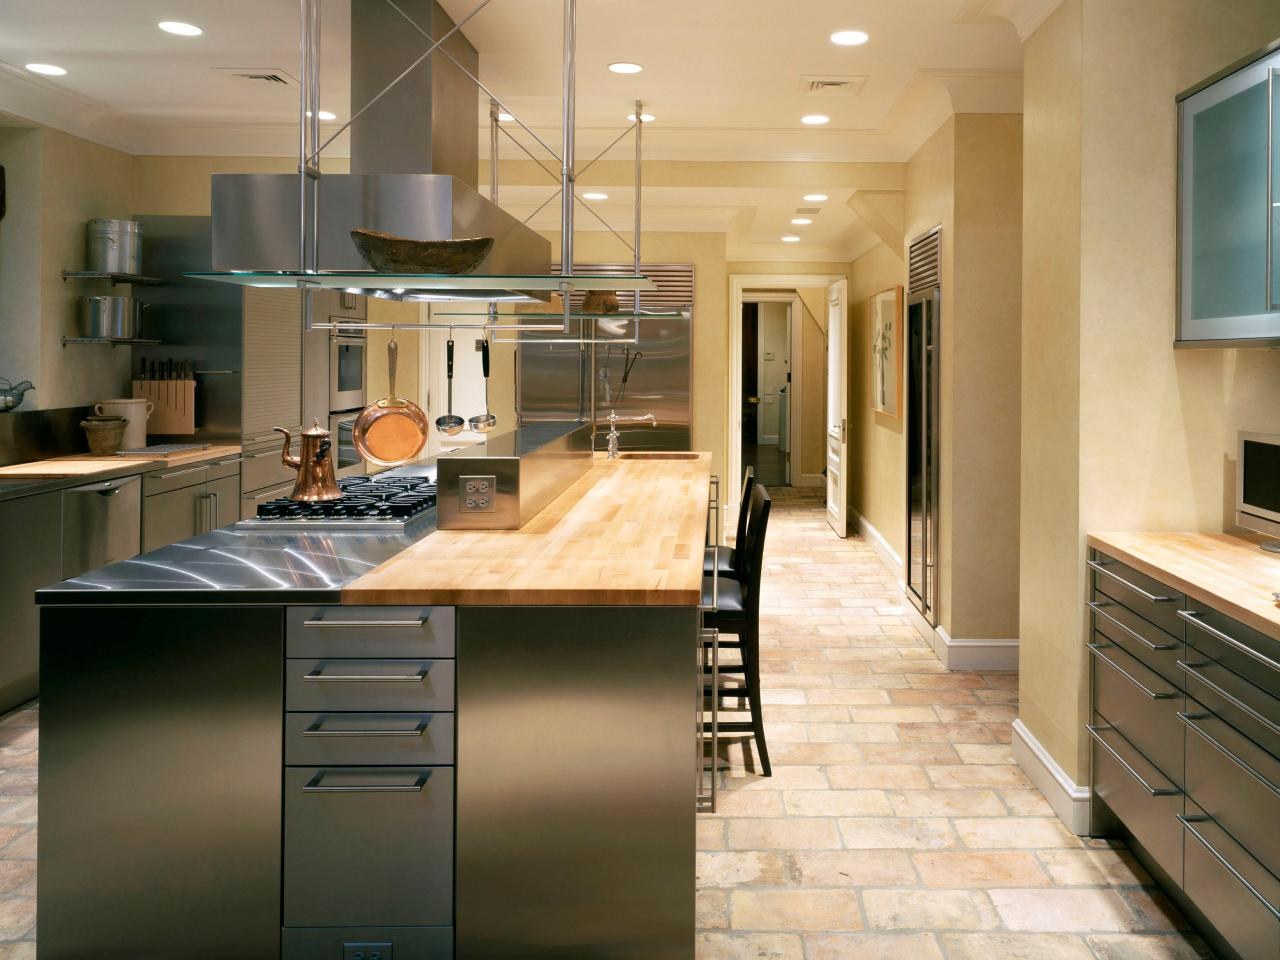 Best Kitchen Floor Maximum Home Value Kitchen Projects Flooring Hgtv